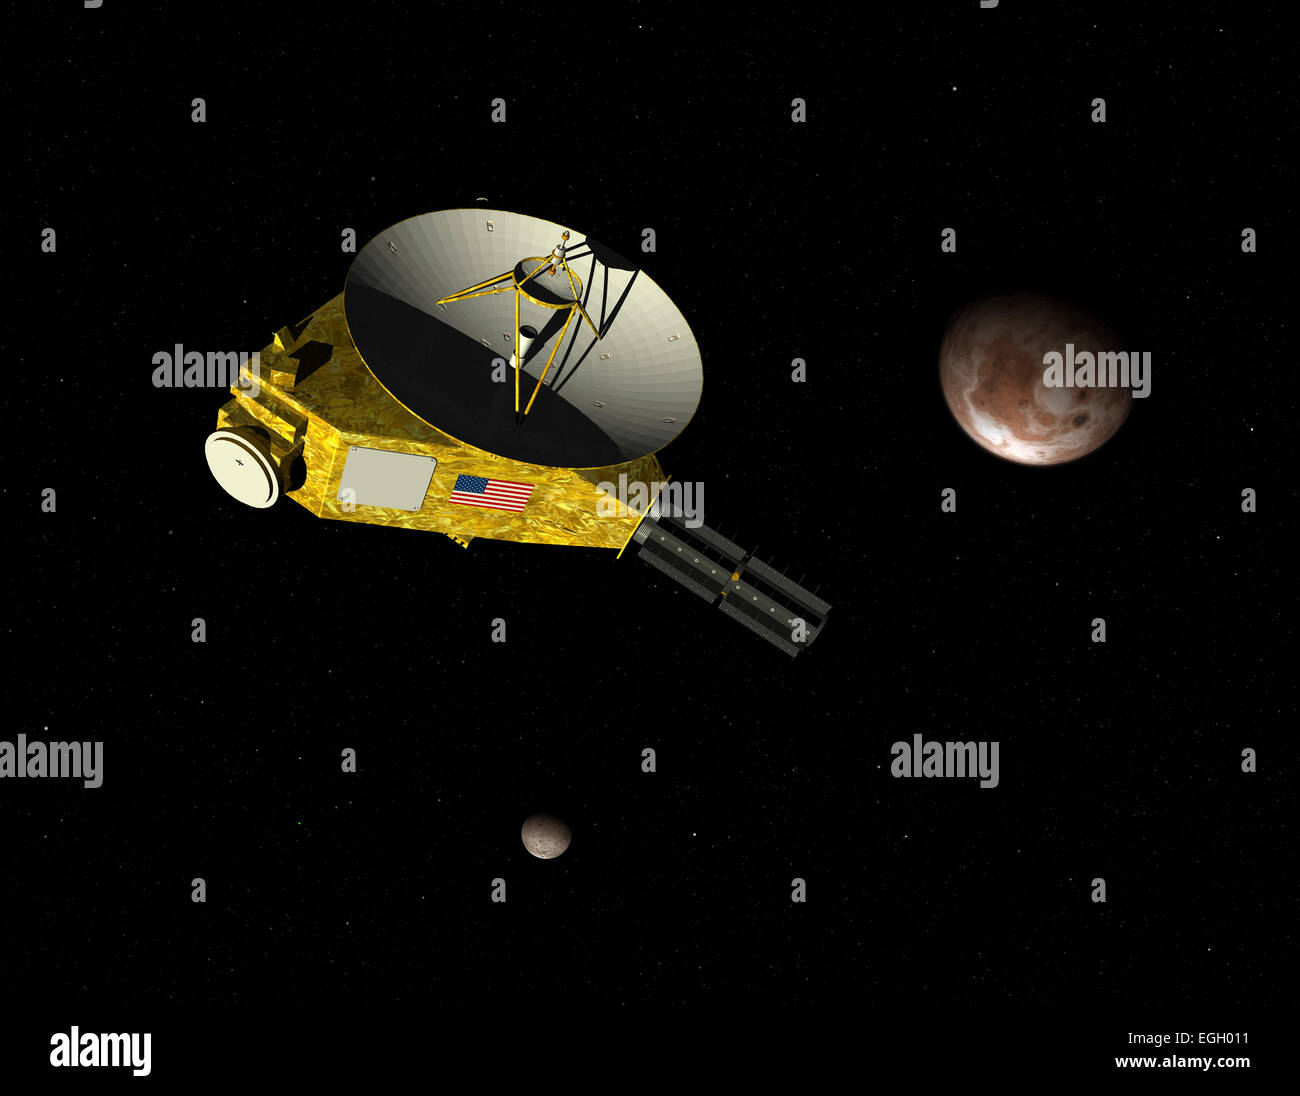 Nasa S New Horizons Unmanned Spacecraft Approaches Dwarf